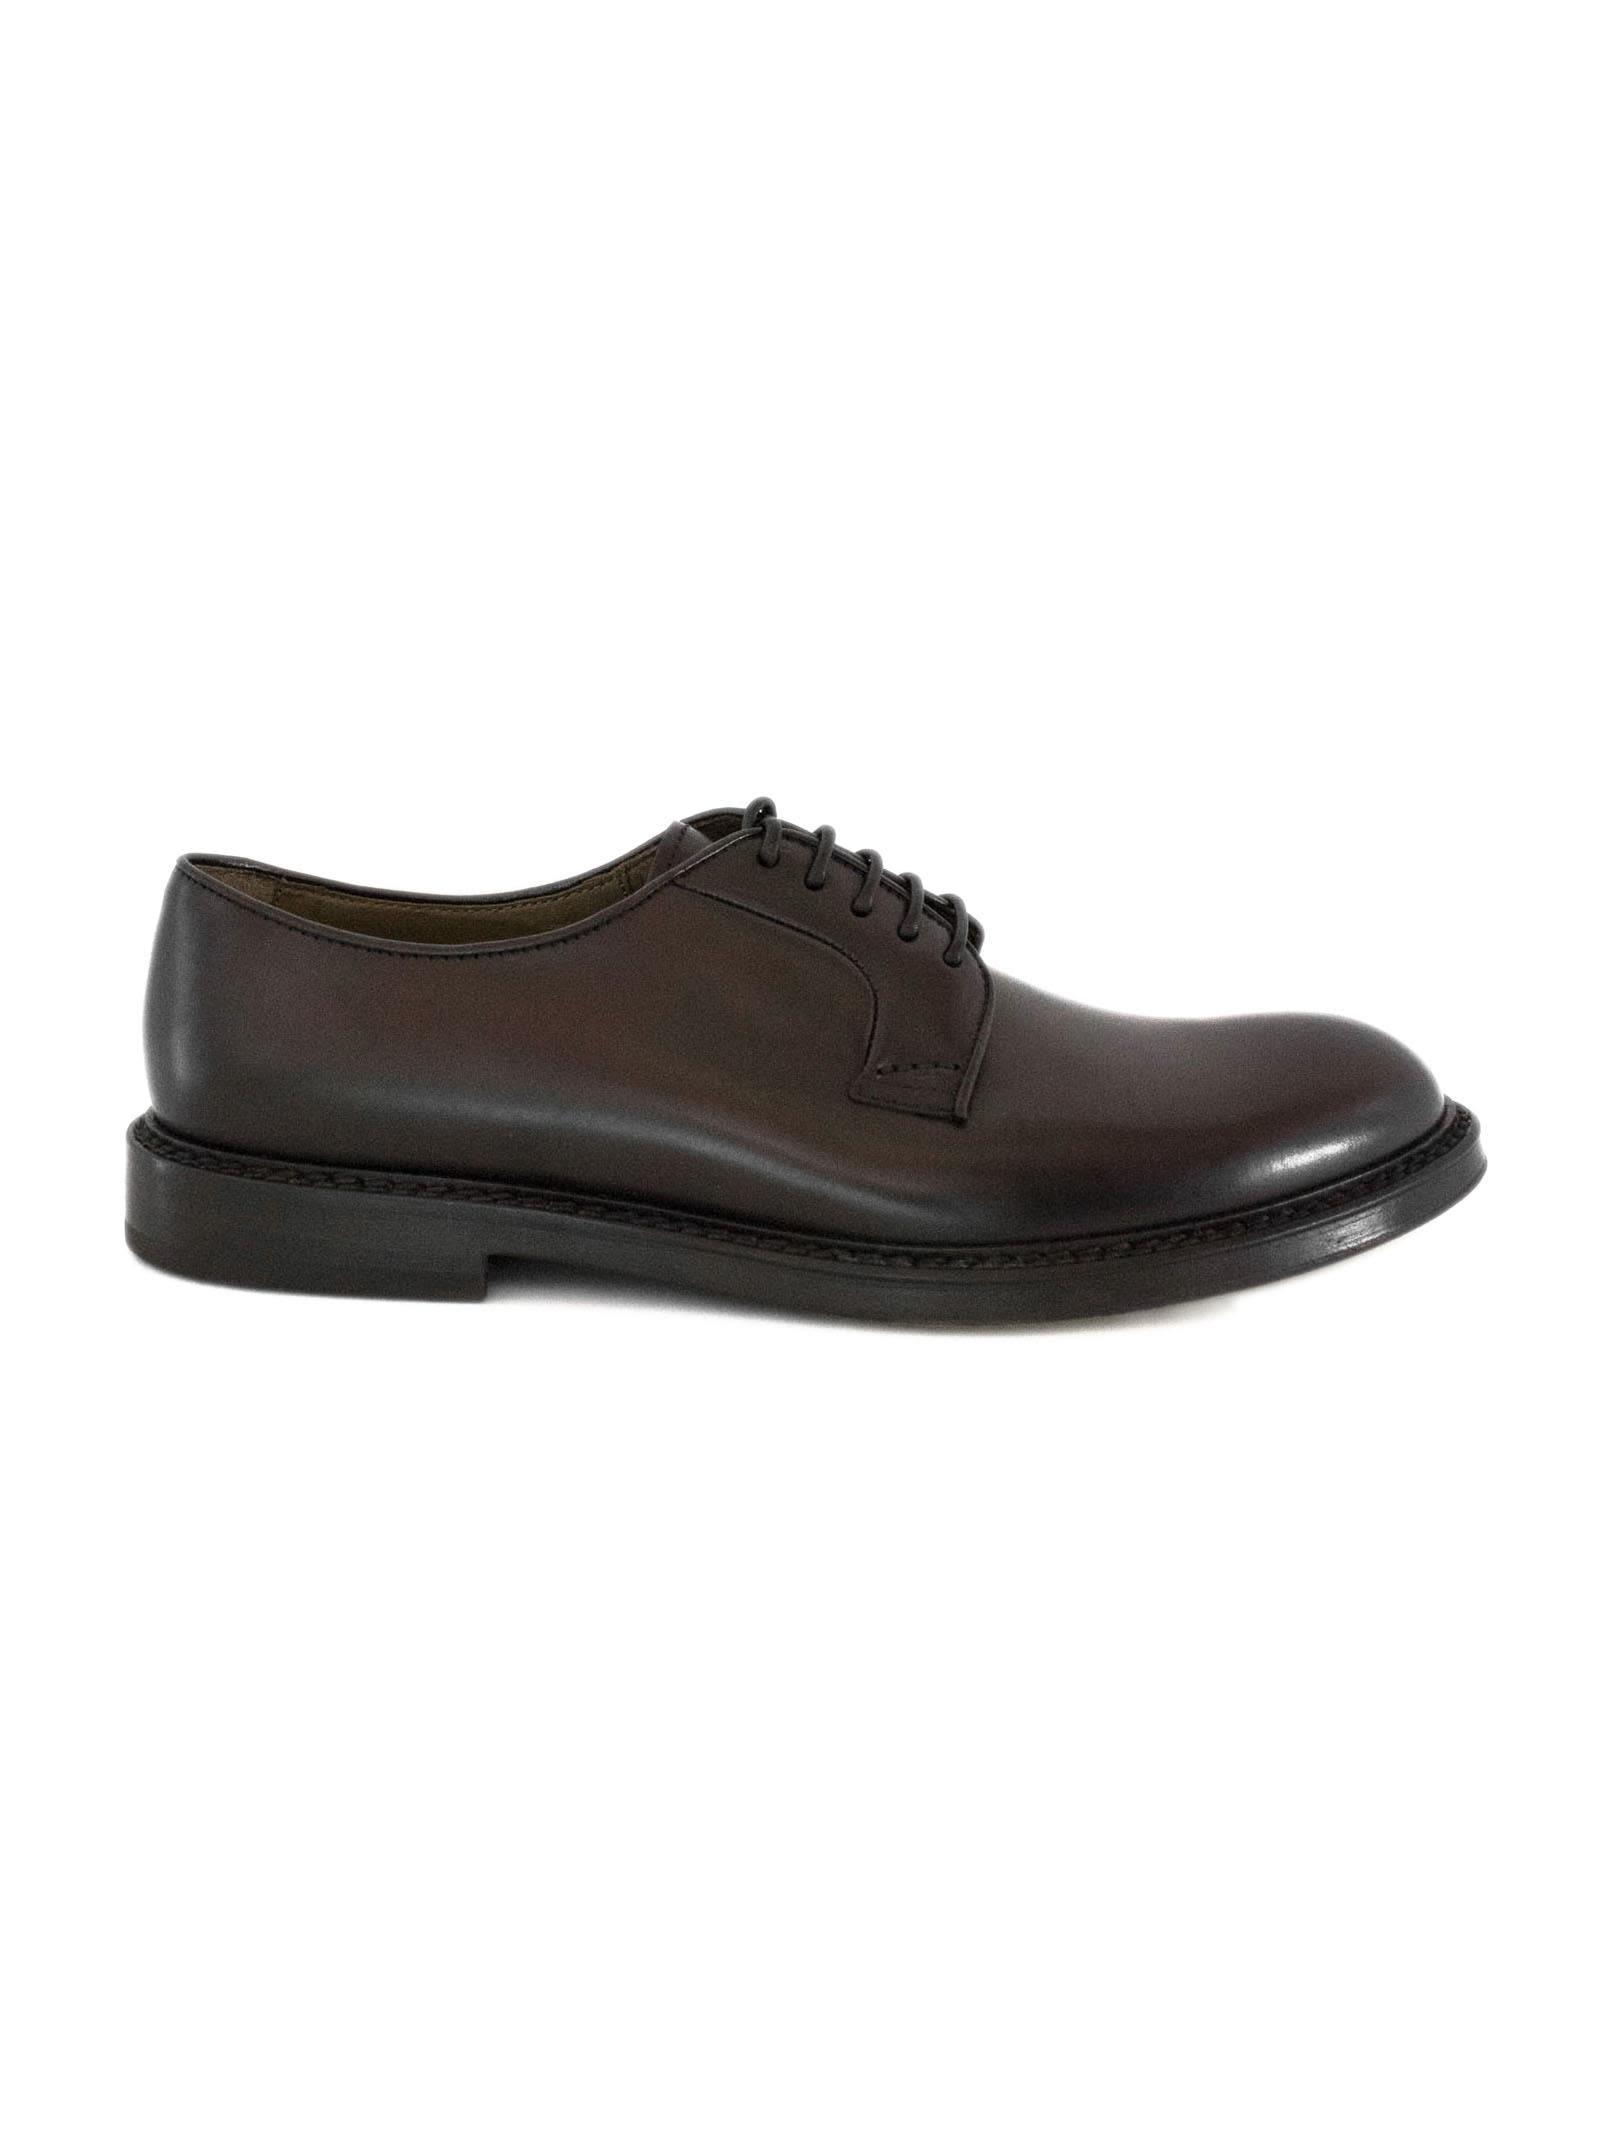 444e2580aba Doucal's Brown Leather Derby Shoes. In Testa Di Moro | ModeSens